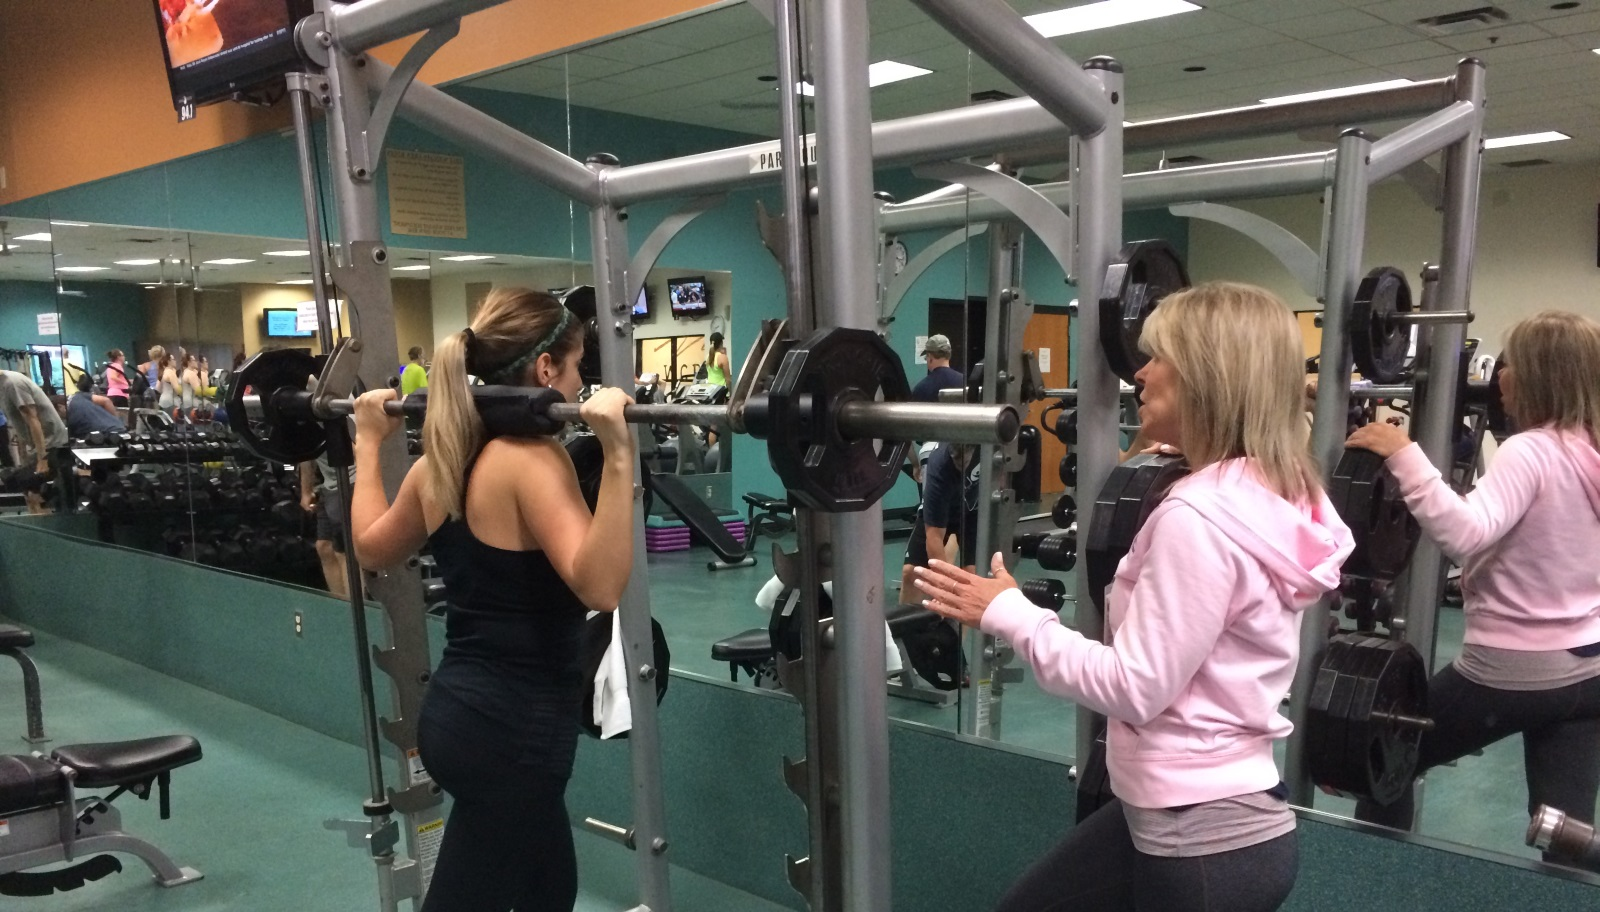 Theresa Mascolo Personal Training Session